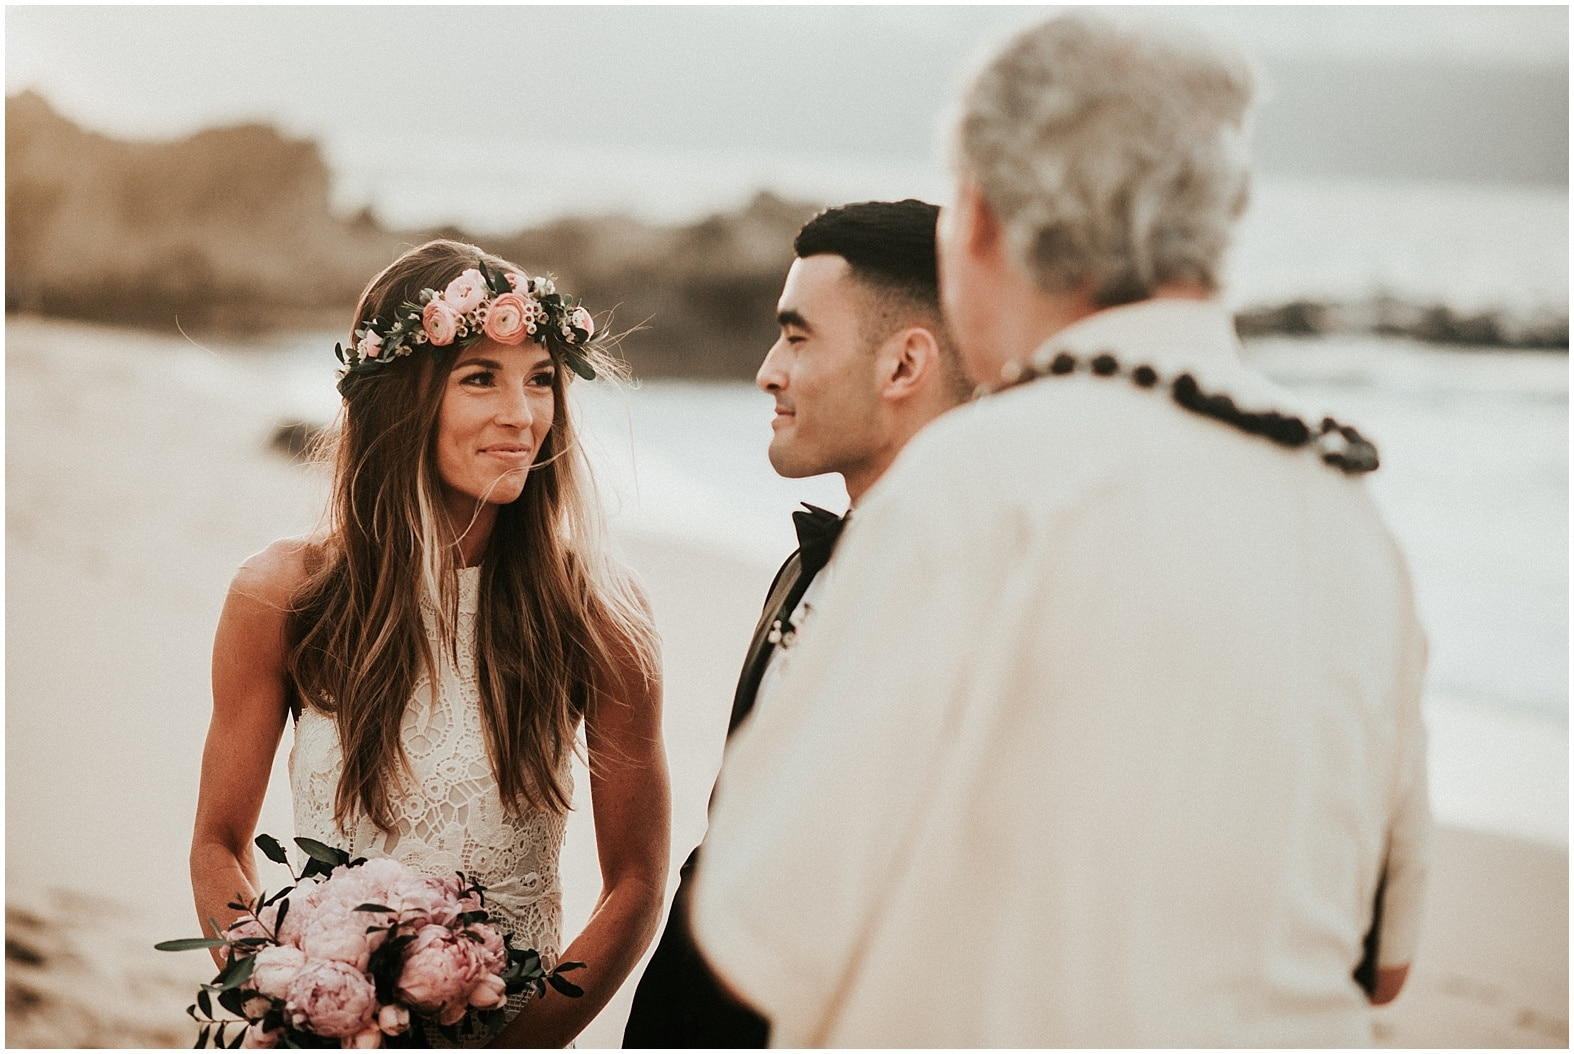 Courtney and Rick ~ Elopement in Kapalua, Hawaii